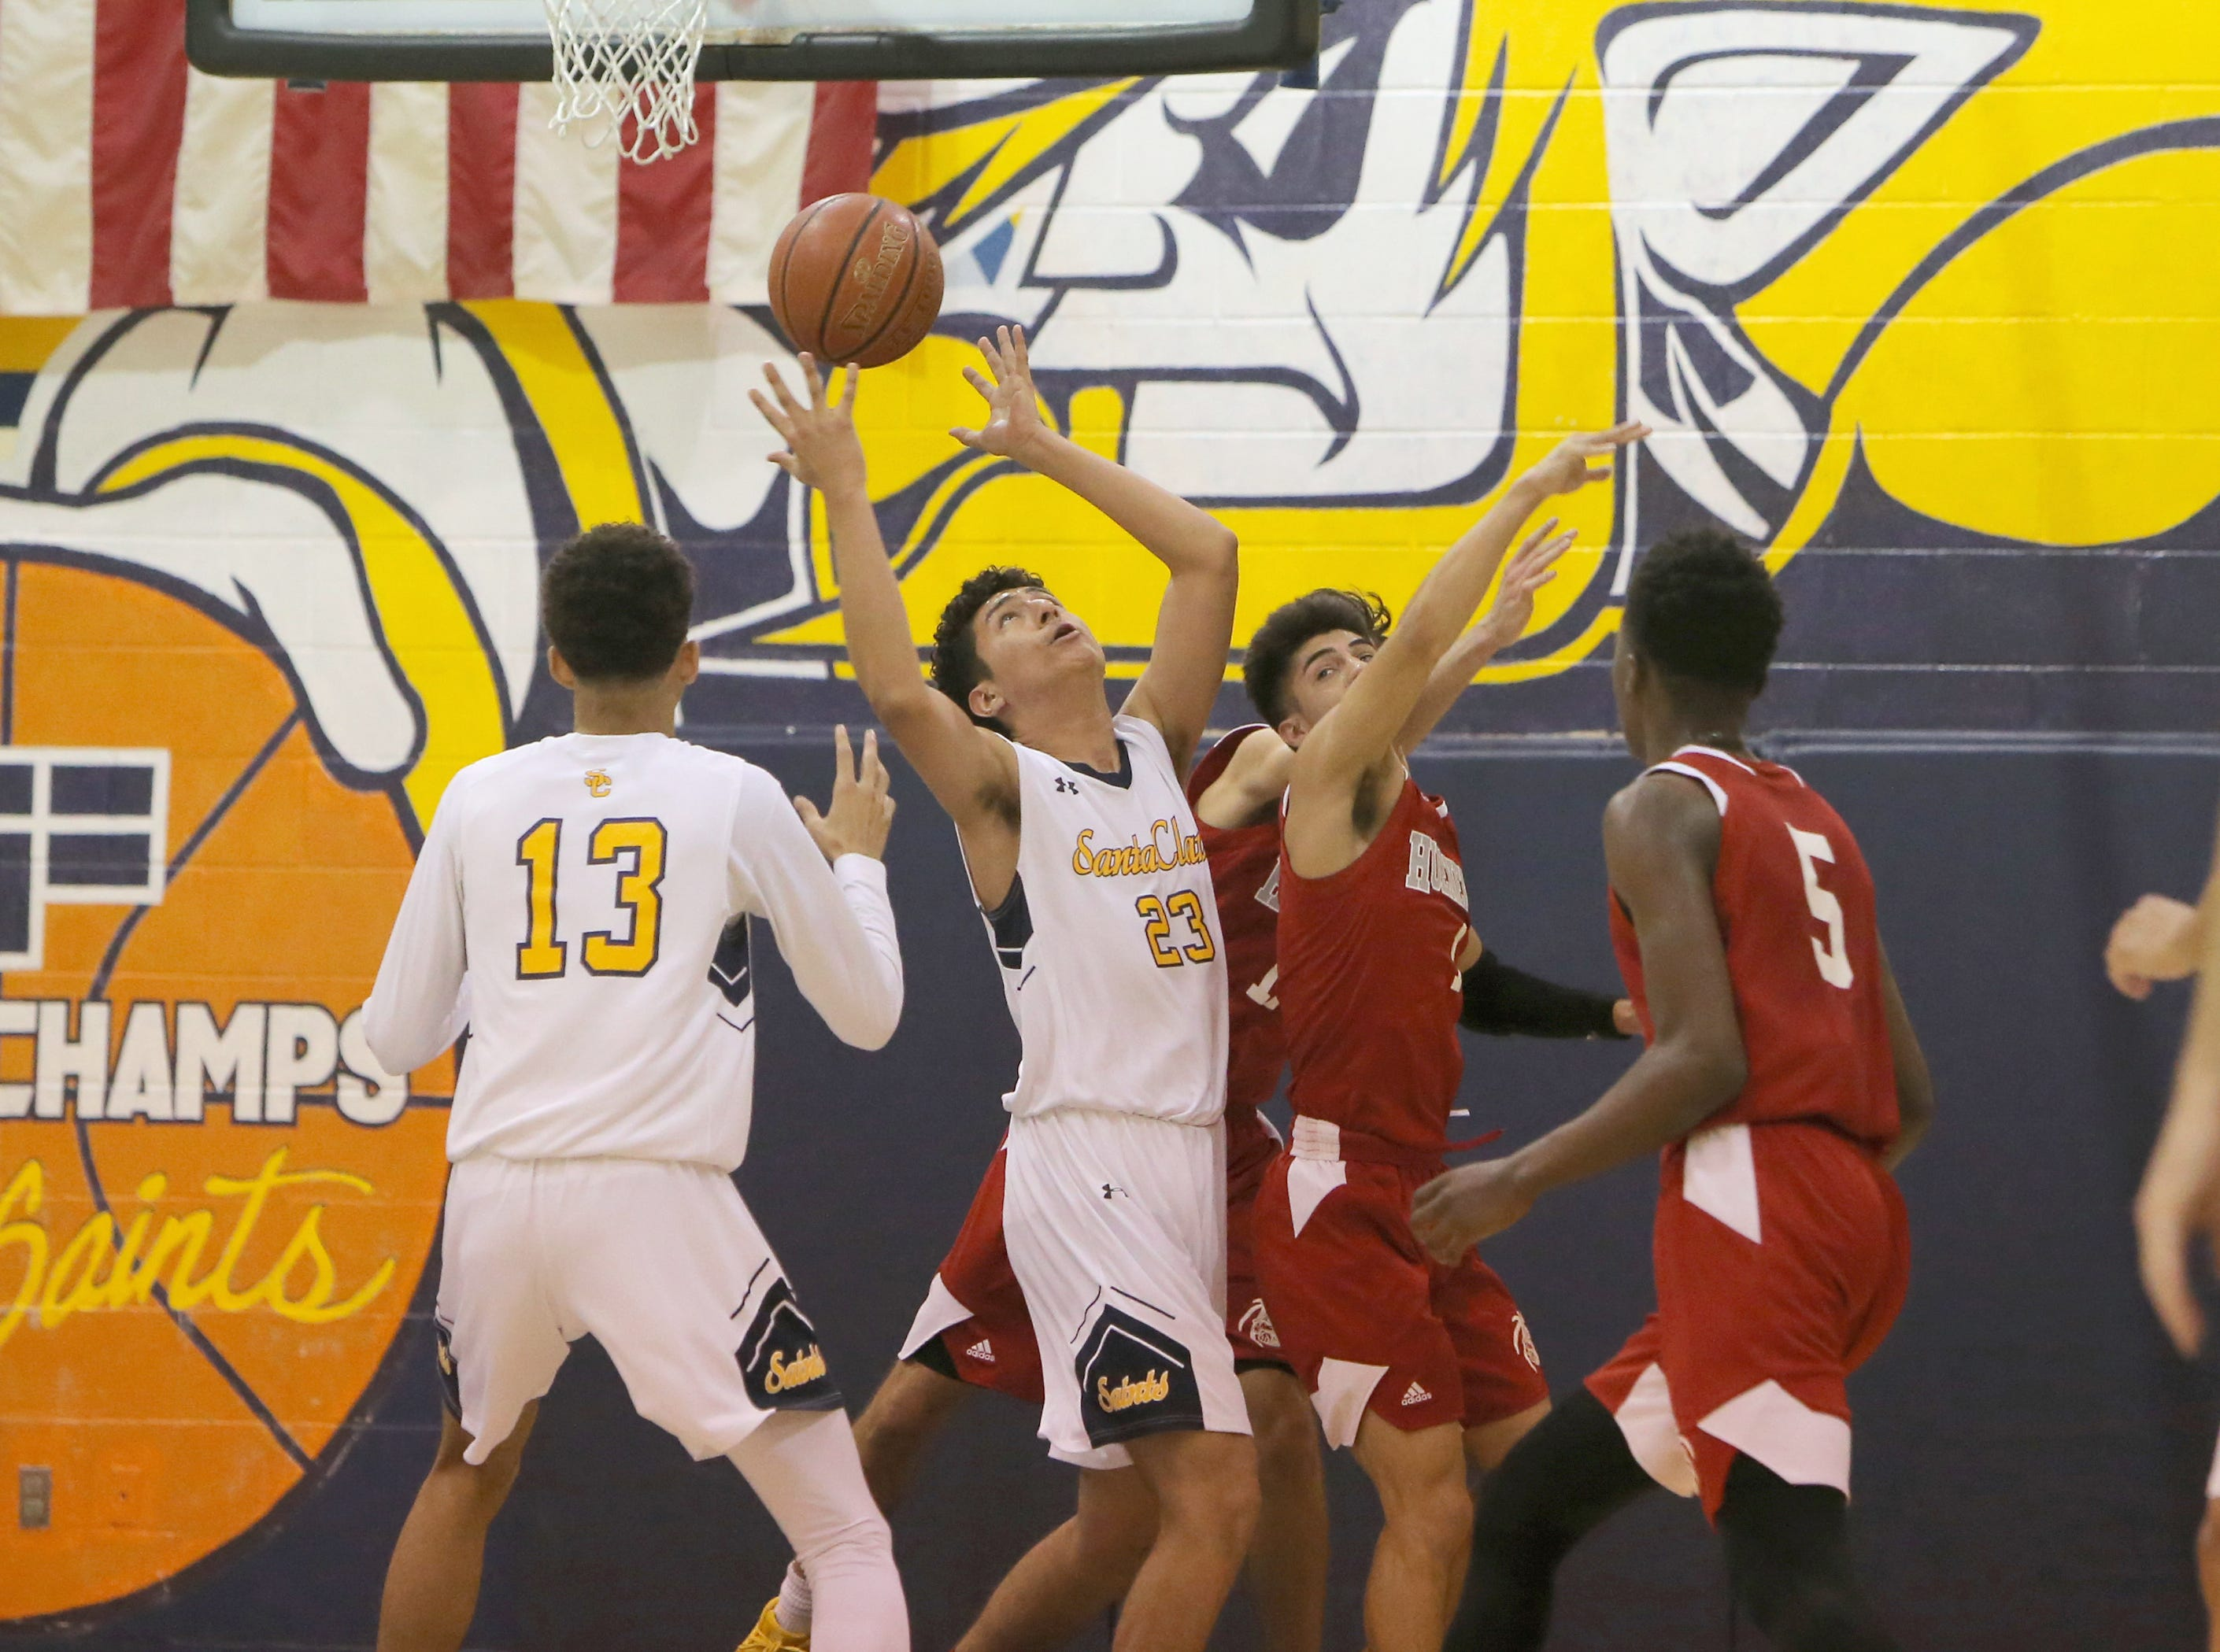 Santa Clara's Anthony Juarez, 23, battles Hueneme's Antonio Ayala for the rebound during Saturday's CIF-Southern Section Division 5AA semifinal at Santa Clara High. The host Saints won 51-37.